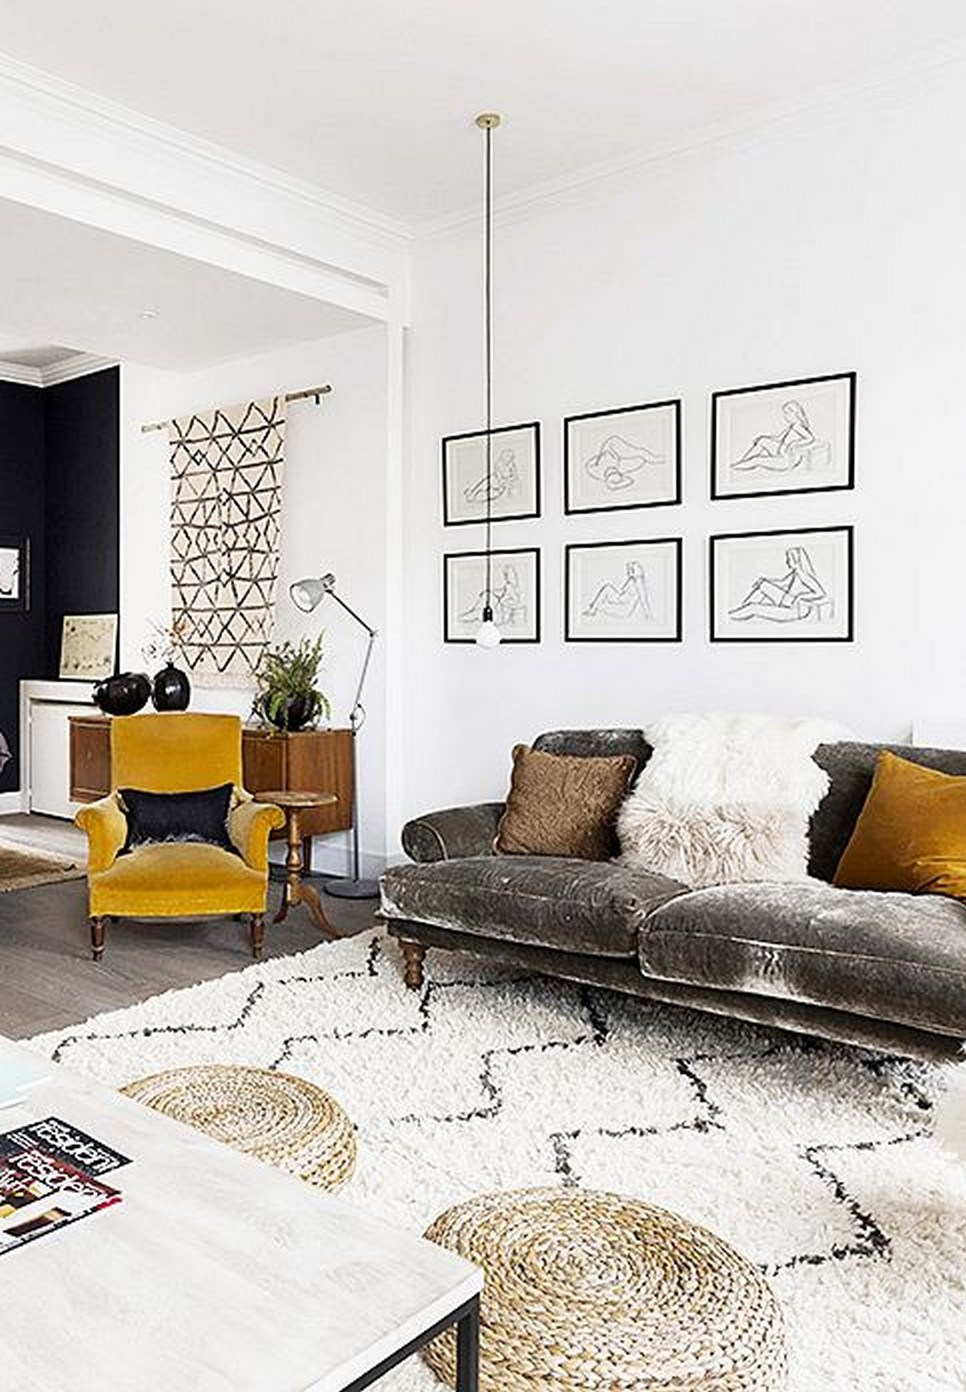 20 Perfect Small Apartment Decorating on a Budget - Decor ...